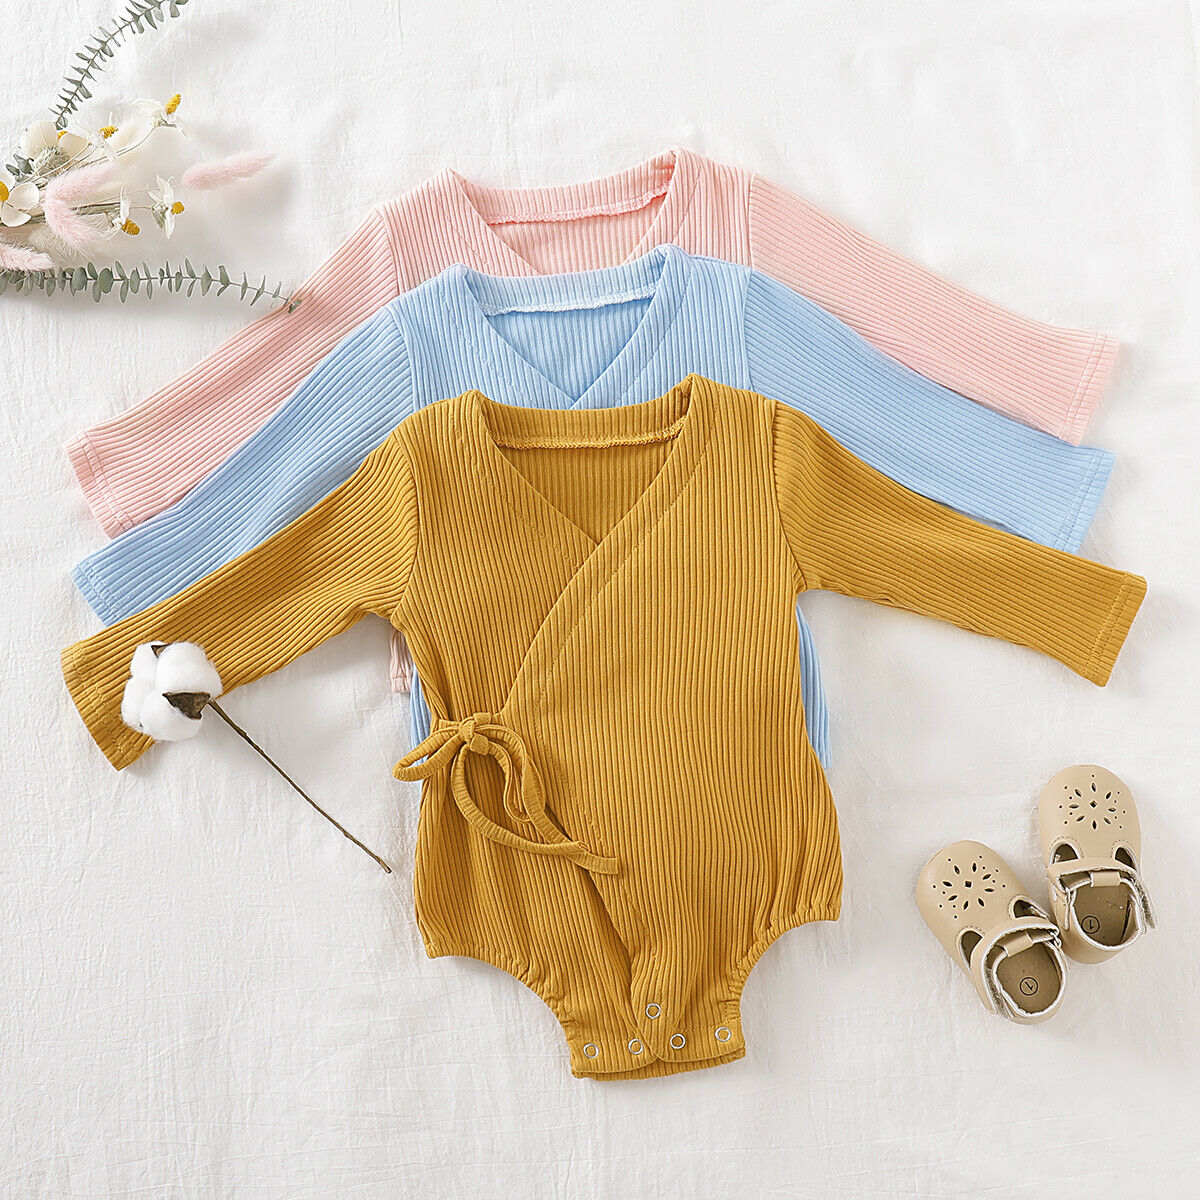 2019 Baby New Autumn Clothing Newborn Infant Baby Girl Boy Solid Kimono Jumpsuits Ribbed Solid Cotton Soft Bodysuit Outfits